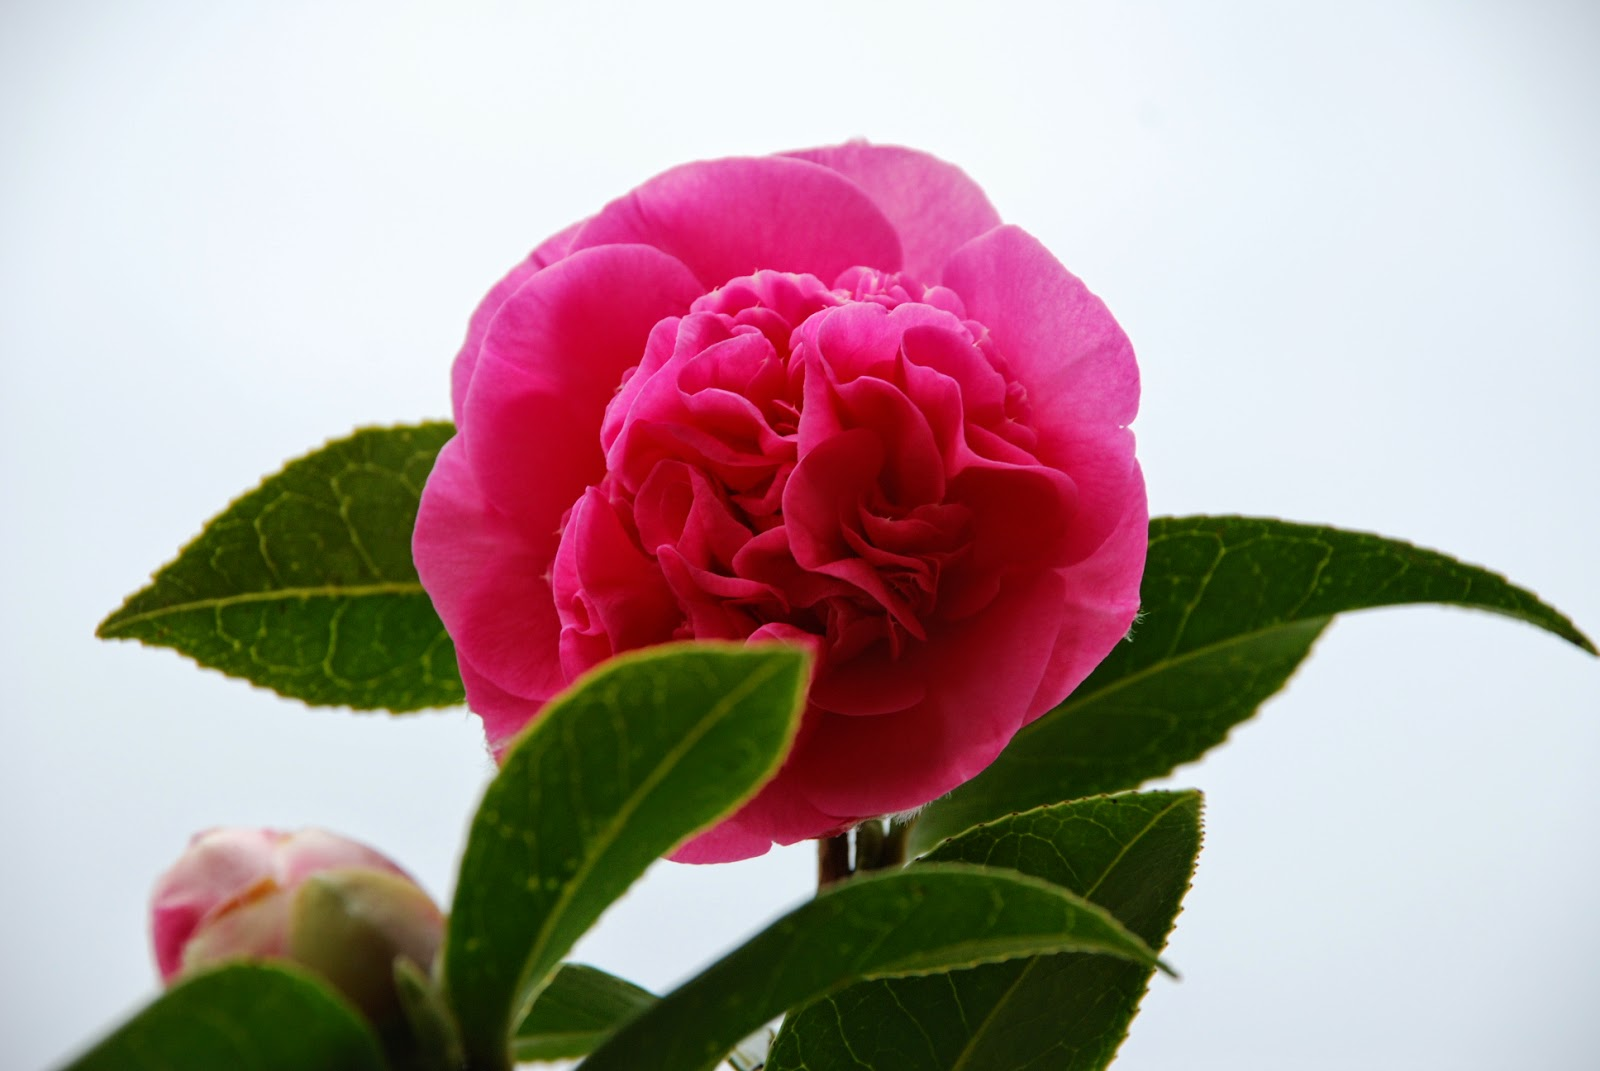 image of a Camelia rose